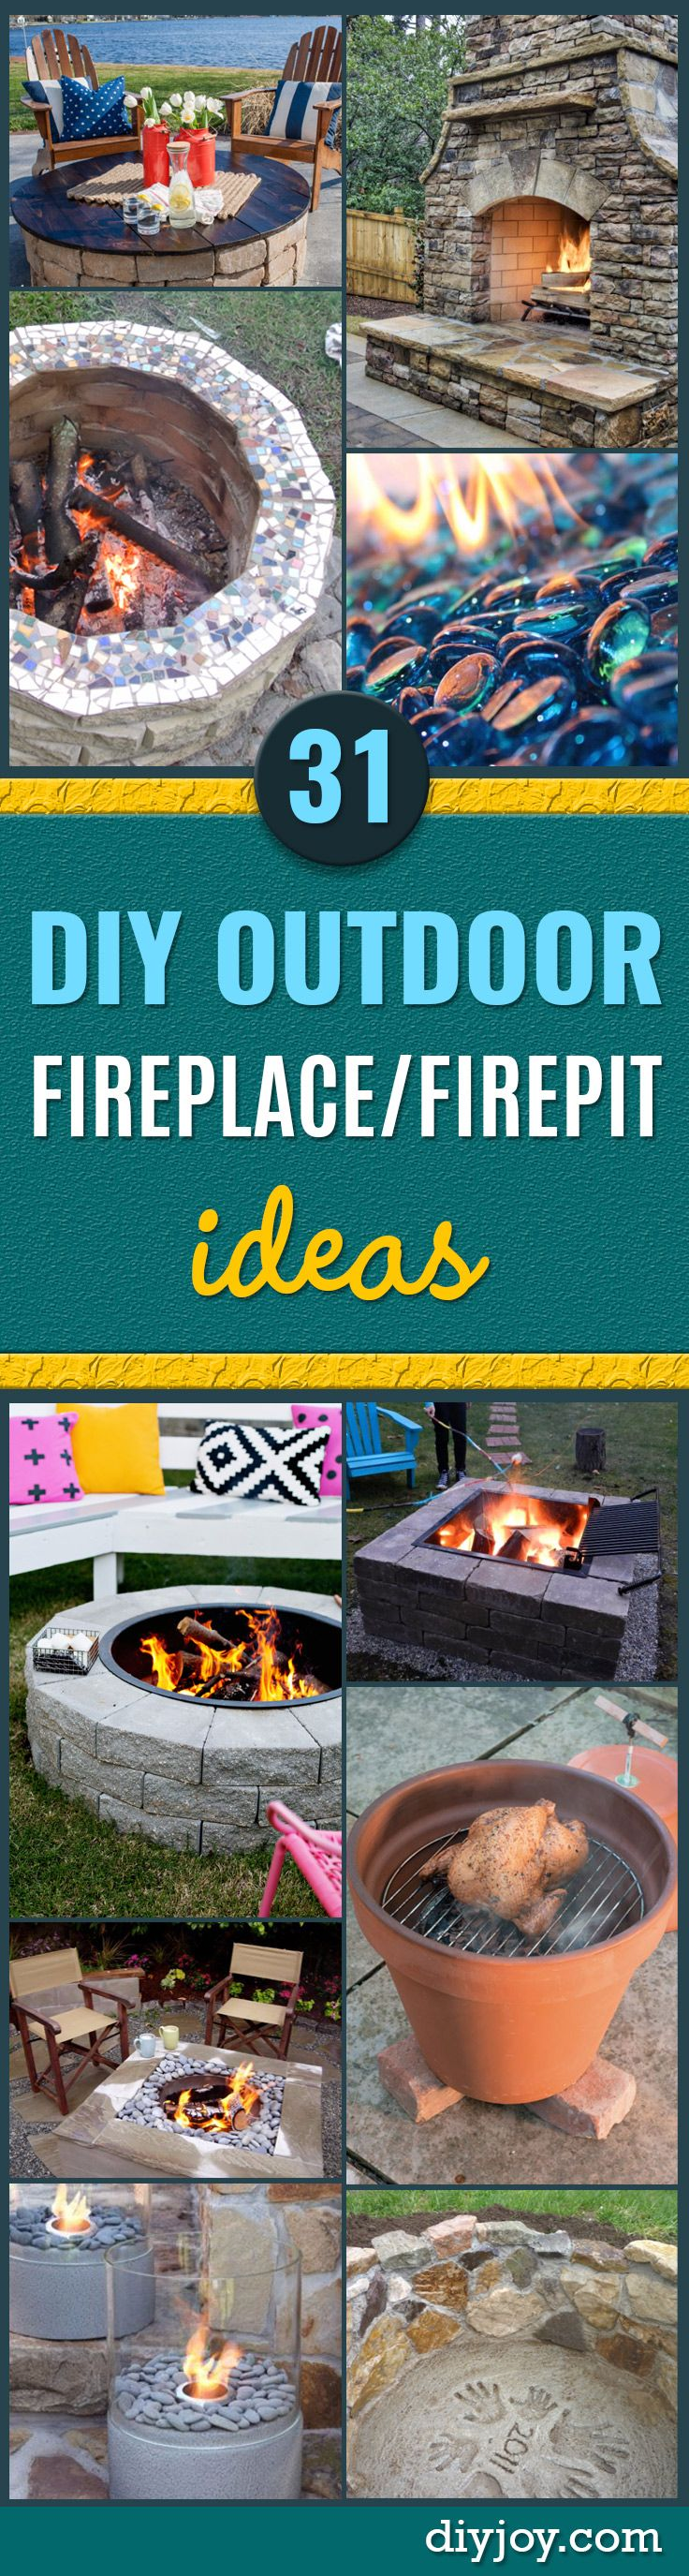 31 diy outdoor fireplace and firepit ideas solutioingenieria Images